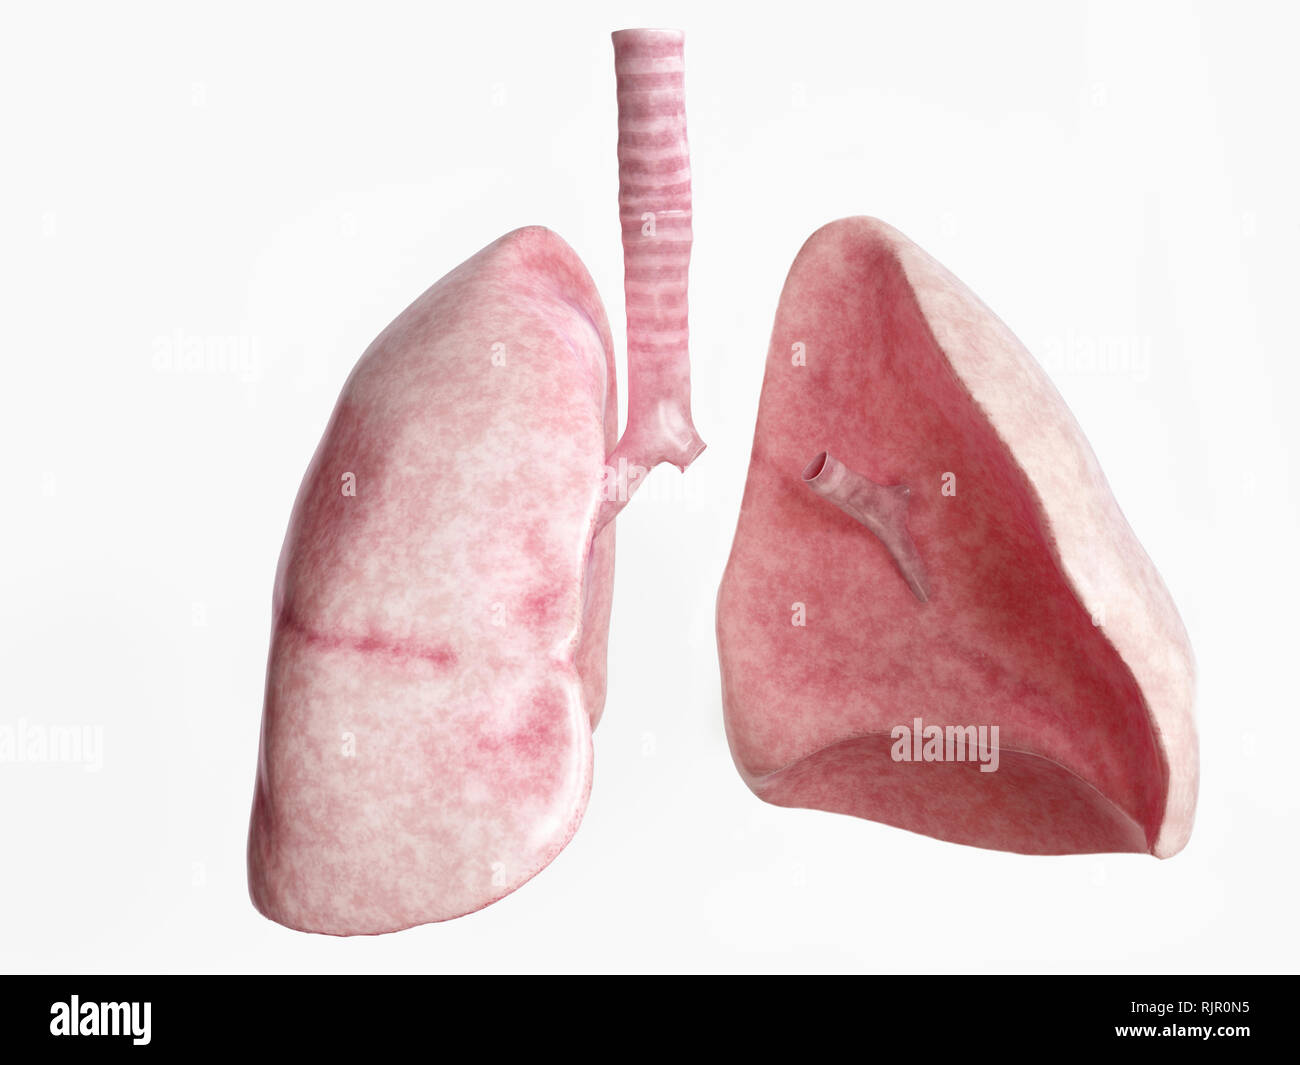 Pneumonectomy after severe lung disease - 4 of 4 - 3D Rendering - Stock Image